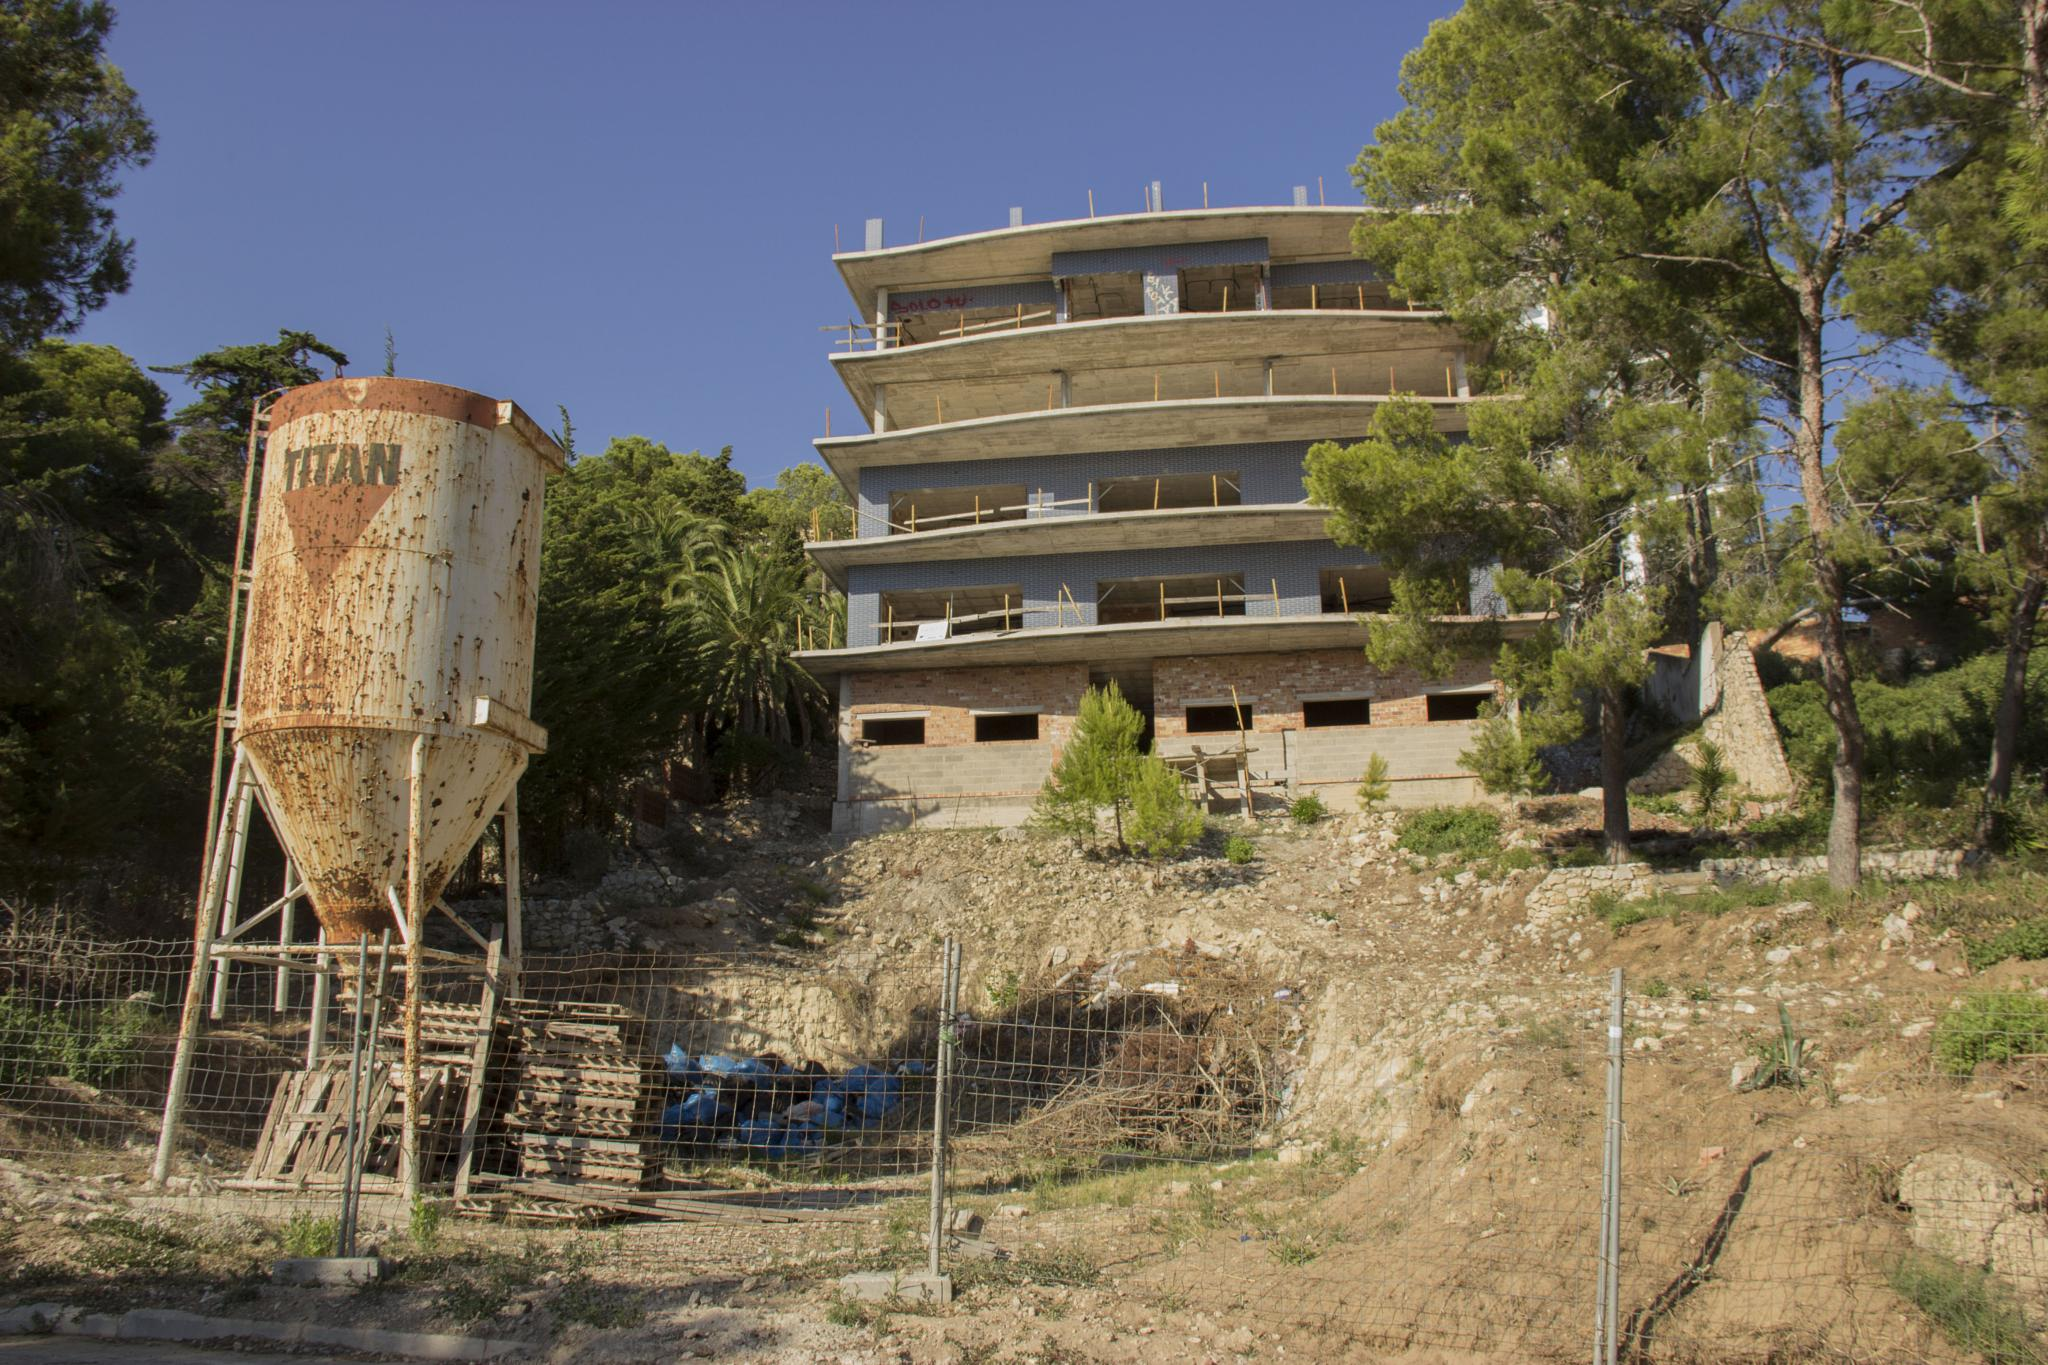 Deserted builiding site, Spain by Nasta